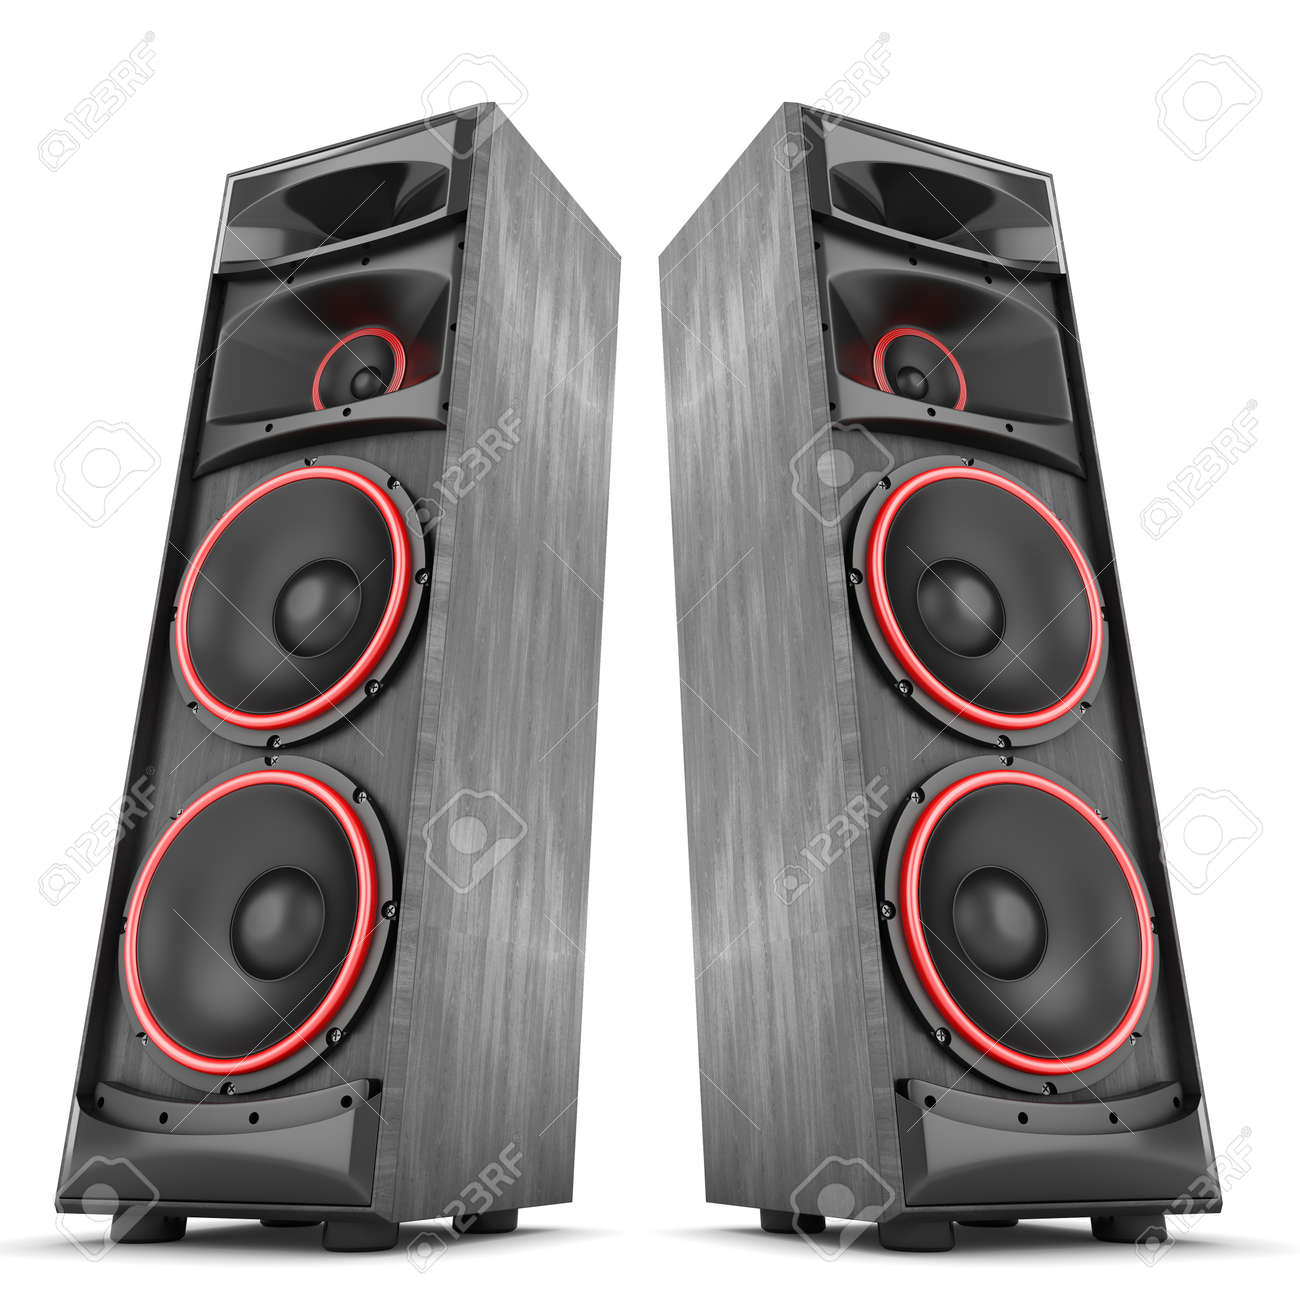 speakers music. speakers boxes audio music concert two isolated high big stock photo - 40226117 s